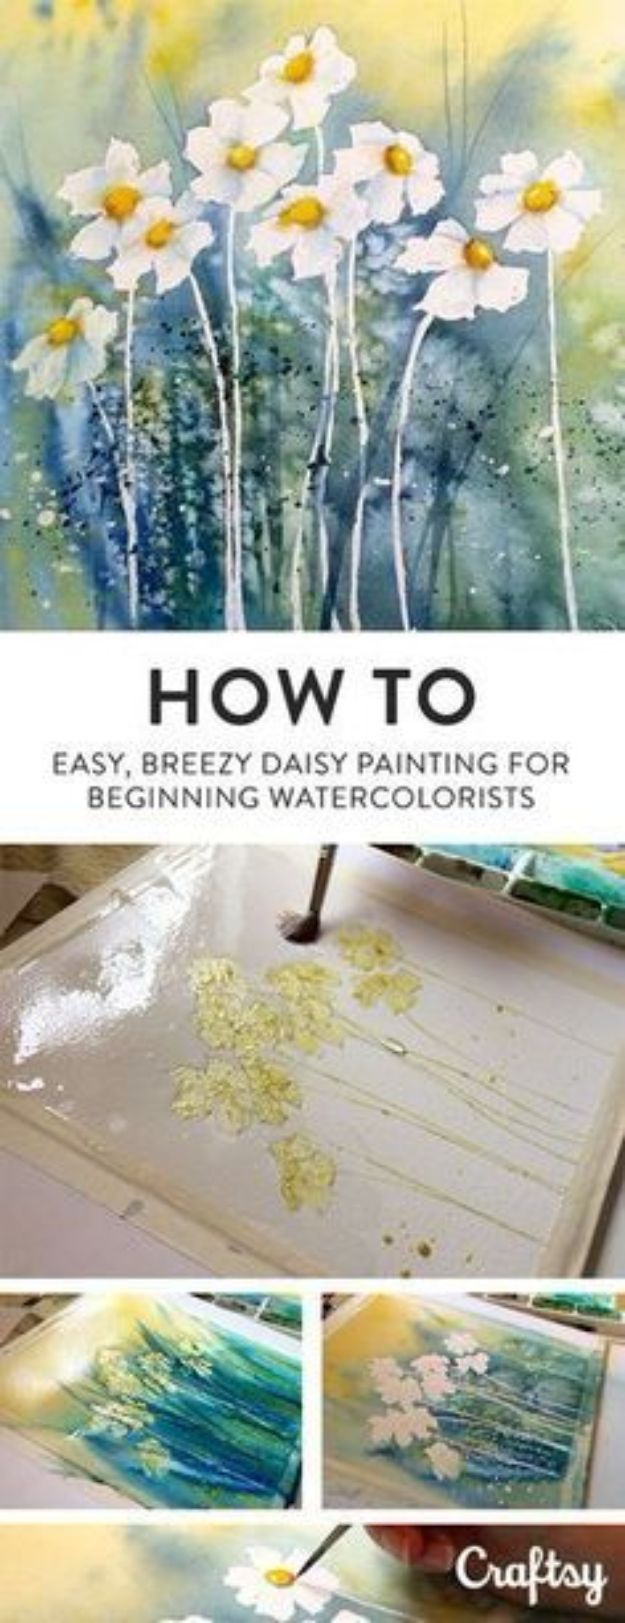 Watercolor Tutorials and Techniques - How To Paint A Daisy In Watercolor - How To Paint With Watercolor - Make Watercolor Flowers, Ocean, Sky, Abstract People, Landscapes, Buildings, Animals, Portraits, Sunset - Step by Step Art Lessons for Beginners - Easy Video Tutorials and How To for Watercolors and Paint Washes #art #watercolor #diyart #artlessons #painting http://diyjoy.com/watercolor-tutorials